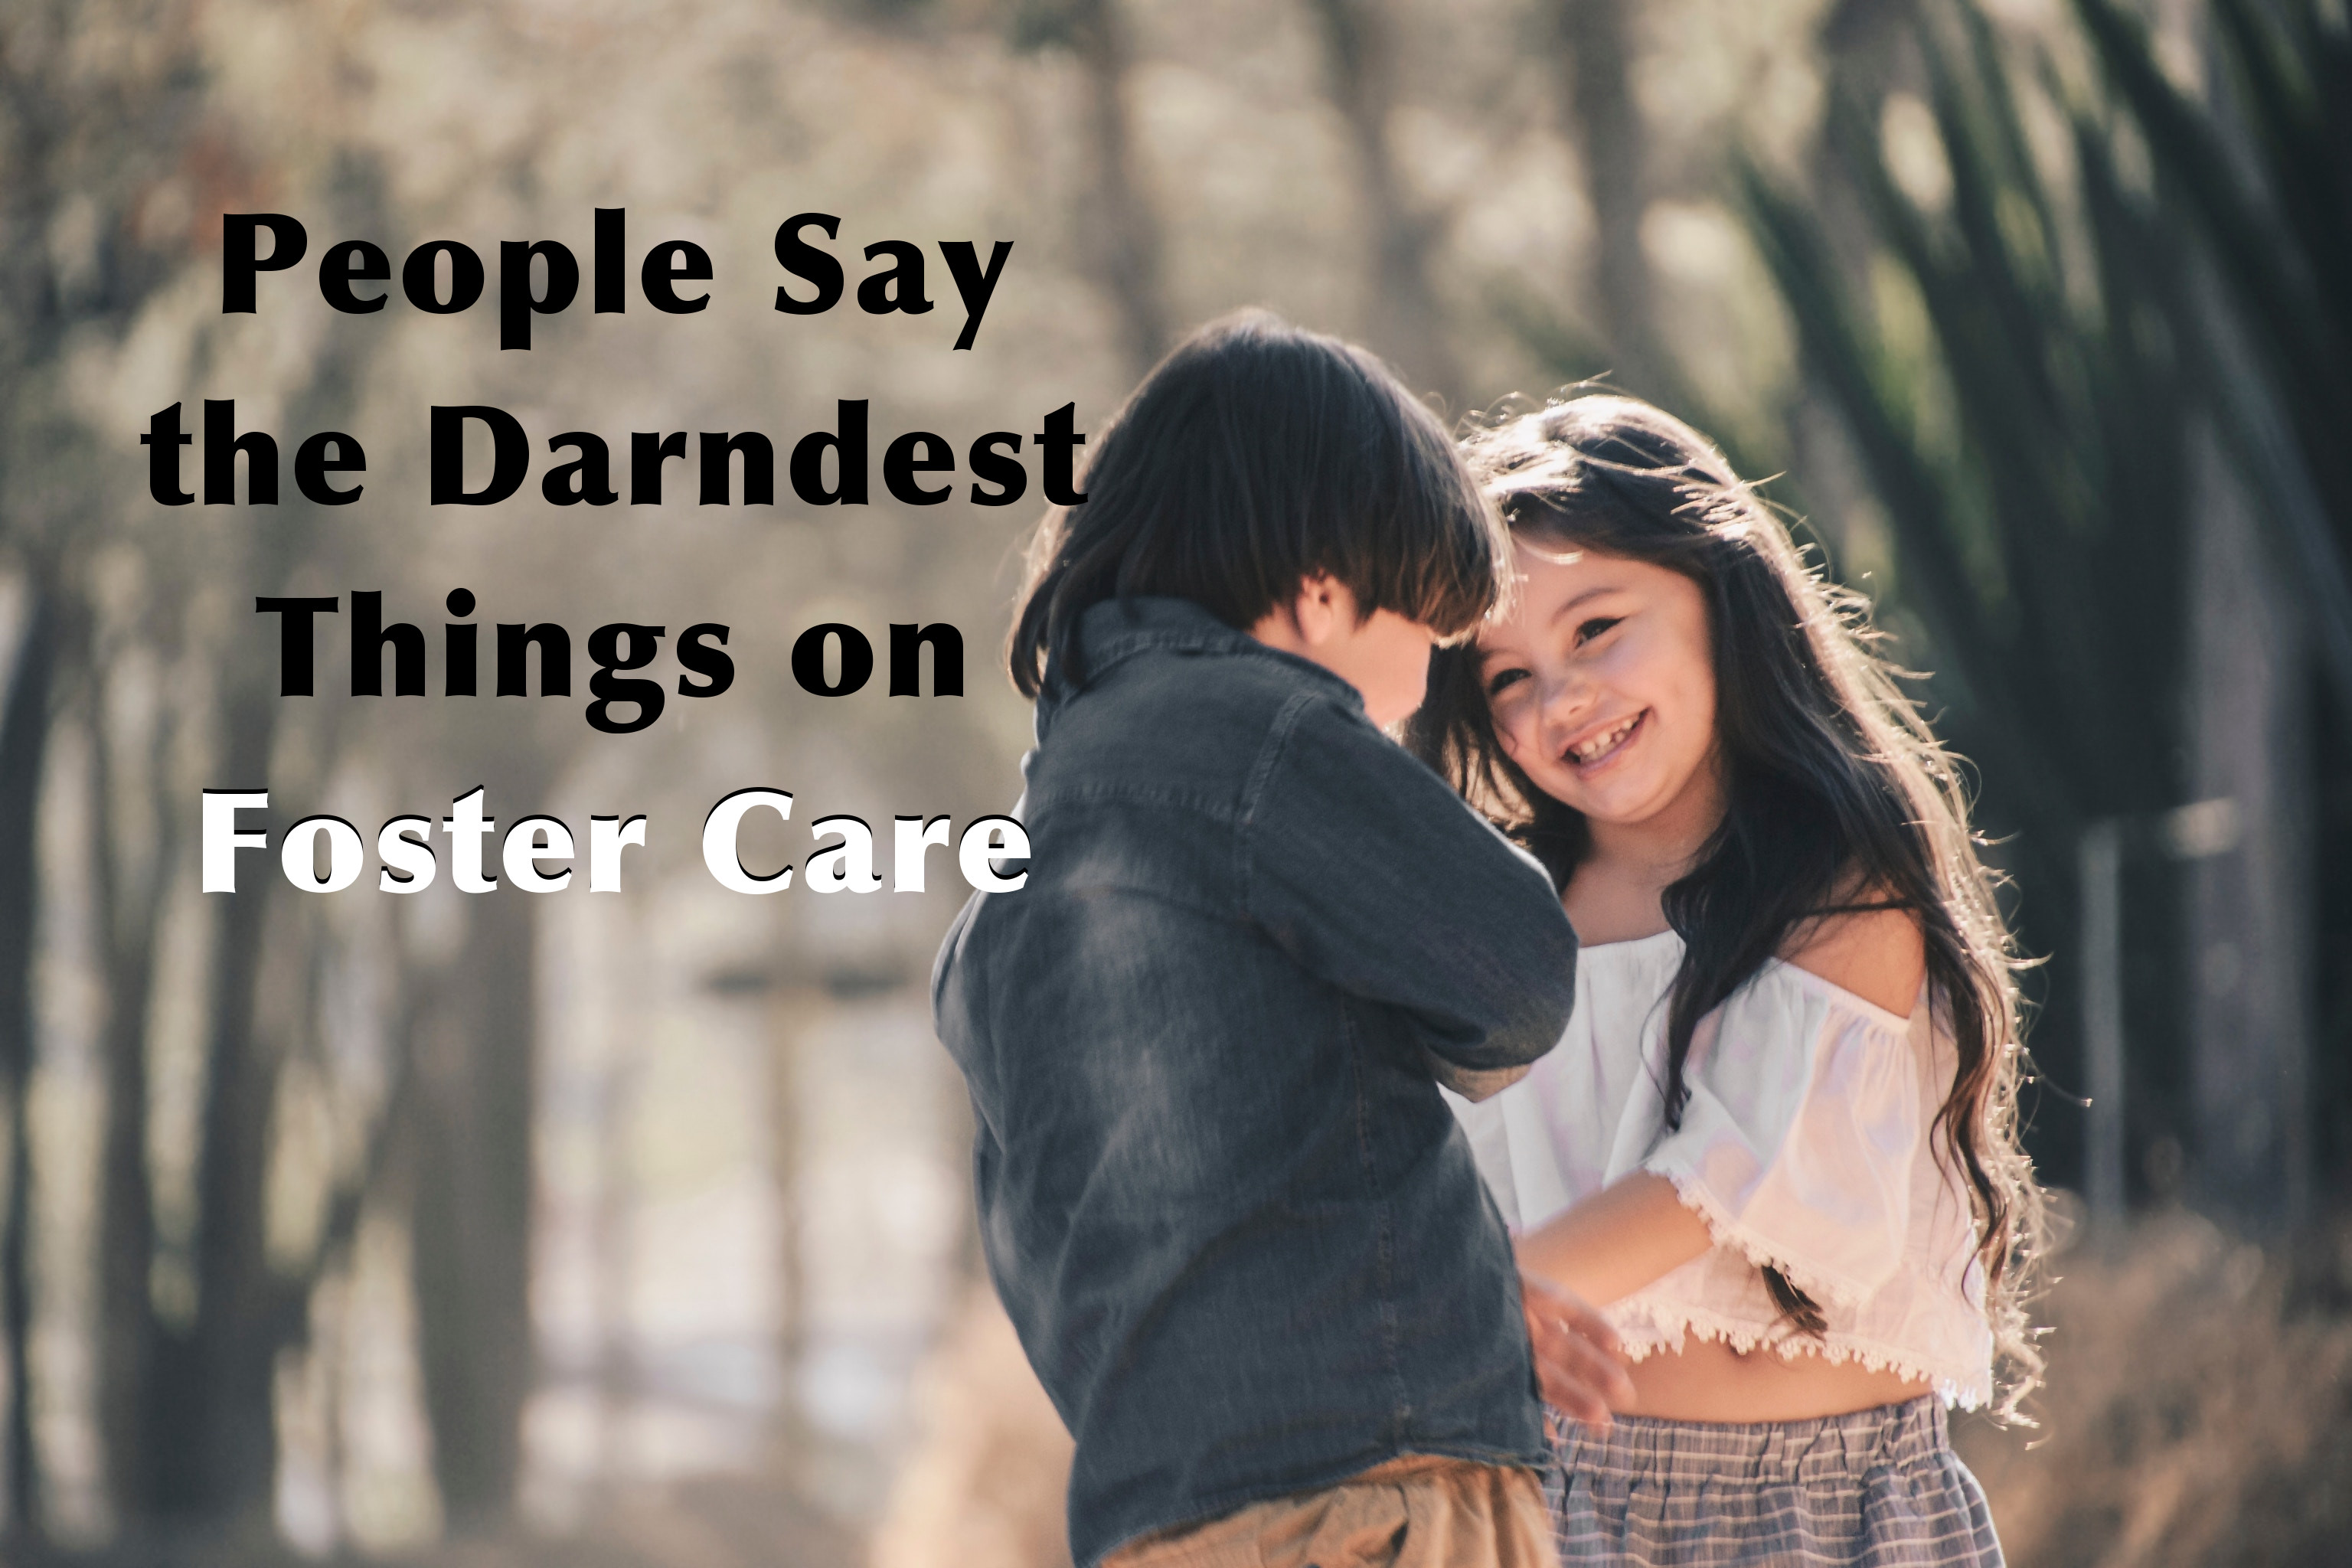 People Say the Darndest Things on Foster Care